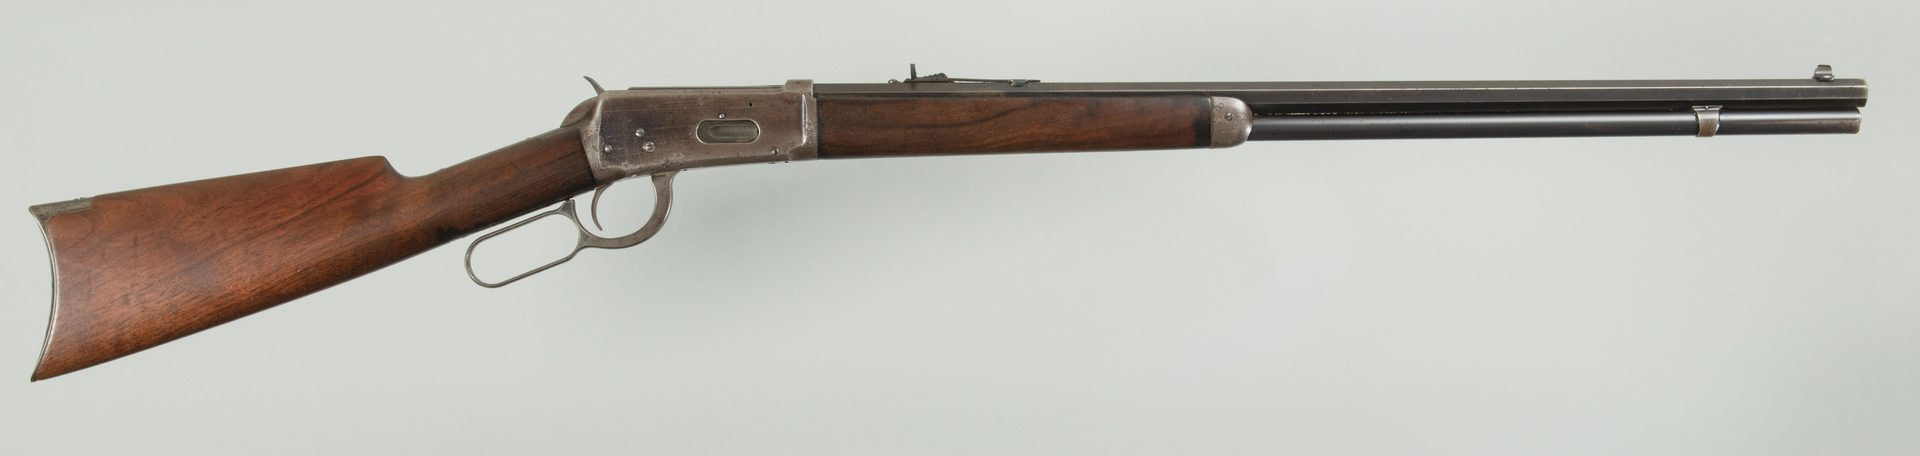 Lot 810: Winchester Model 1894, 30-30 Win Lever Action Rifle